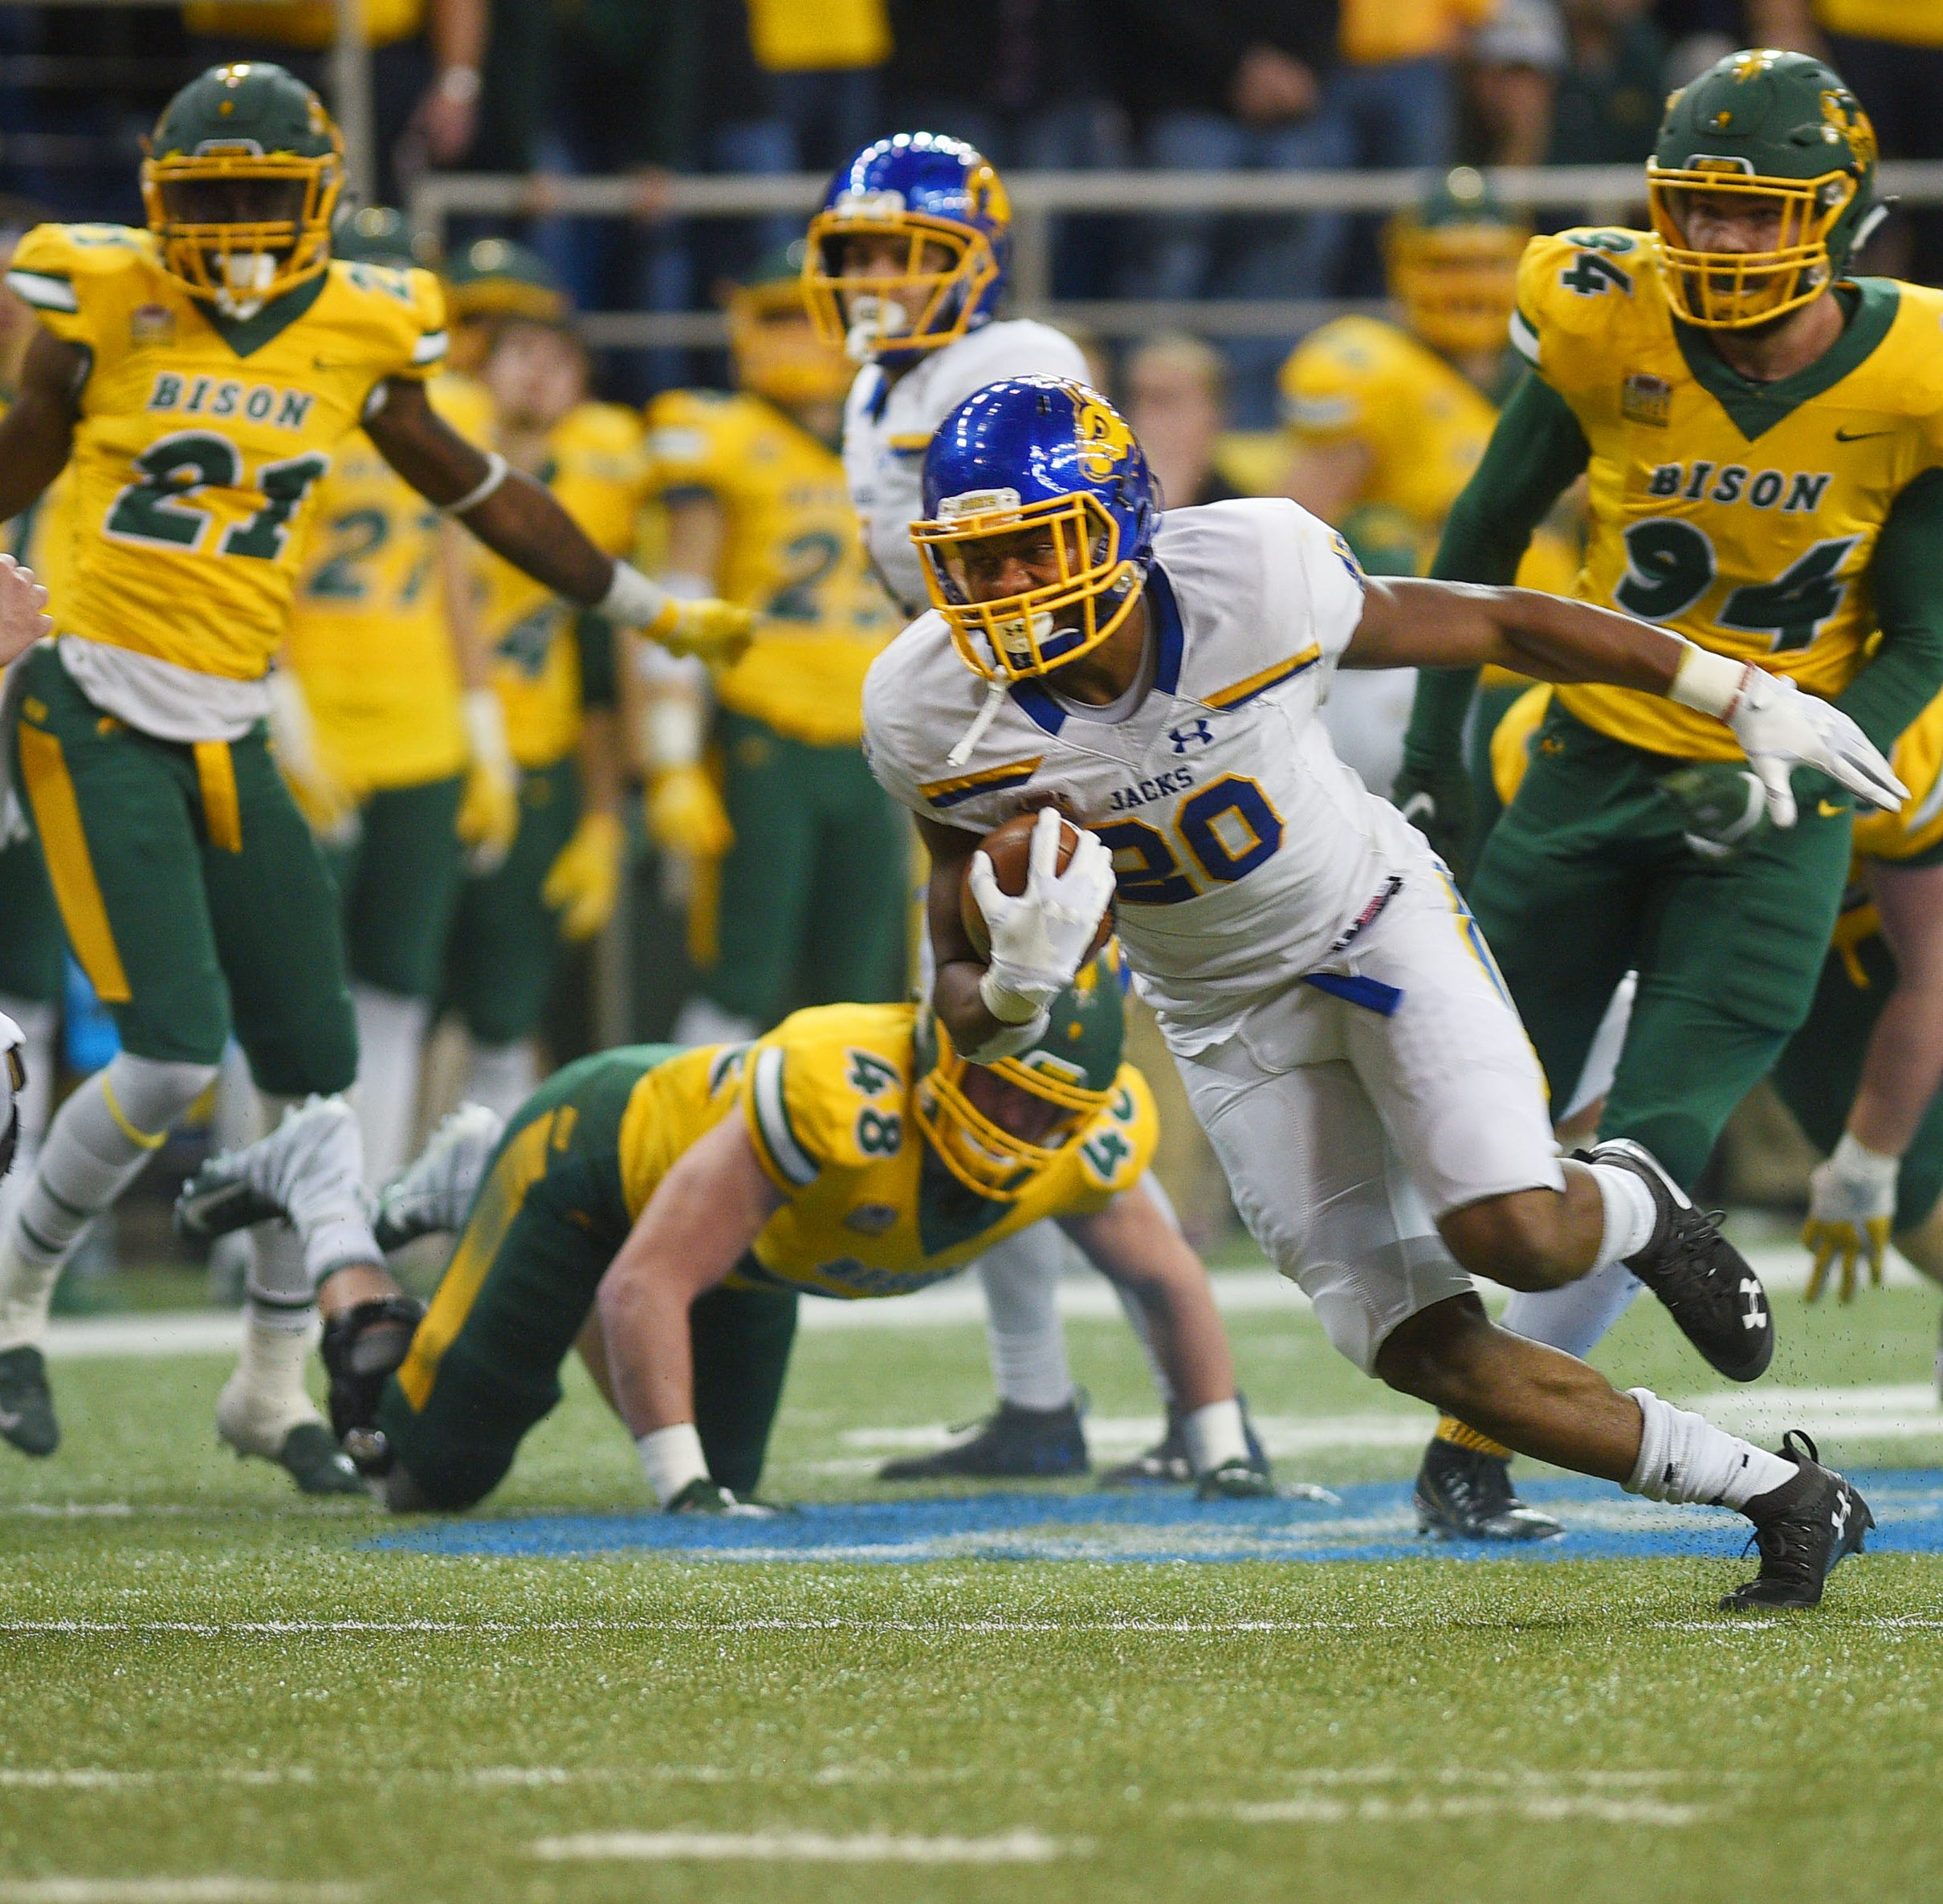 SDSU vs. NDSU football: No shame in losing to North Dakota State, but plenty of frustration